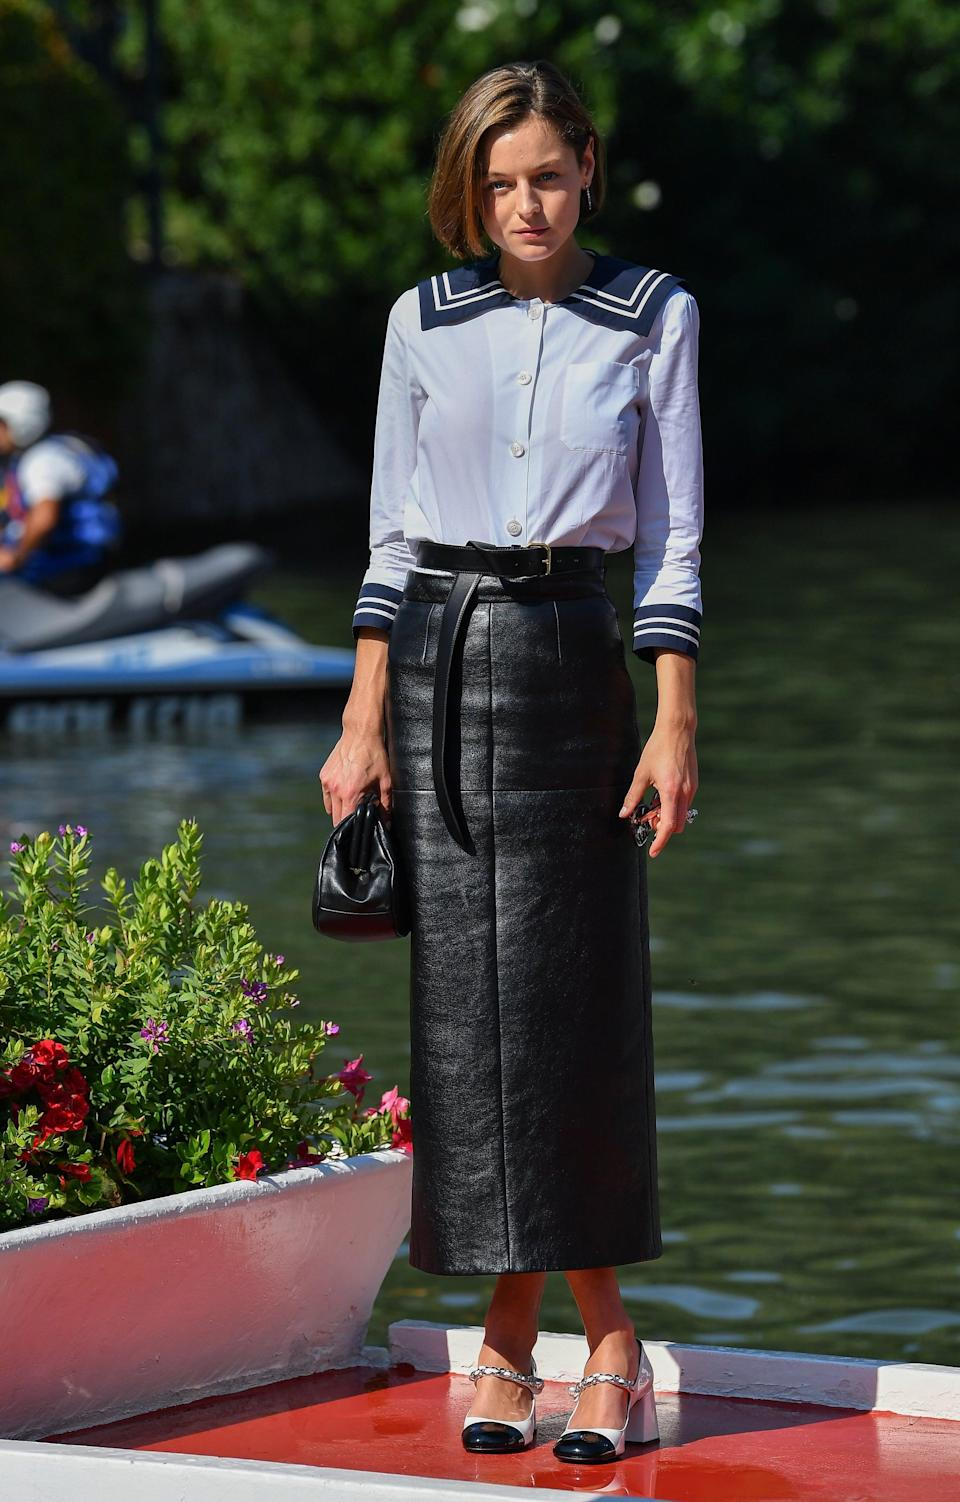 <p>Emma Corrin sure does love a statement collar - <strong>The Crown</strong> actor wore a classic sailor blouse and a black leather maxi skirt to the 2020 Venice Film Festival.</p>